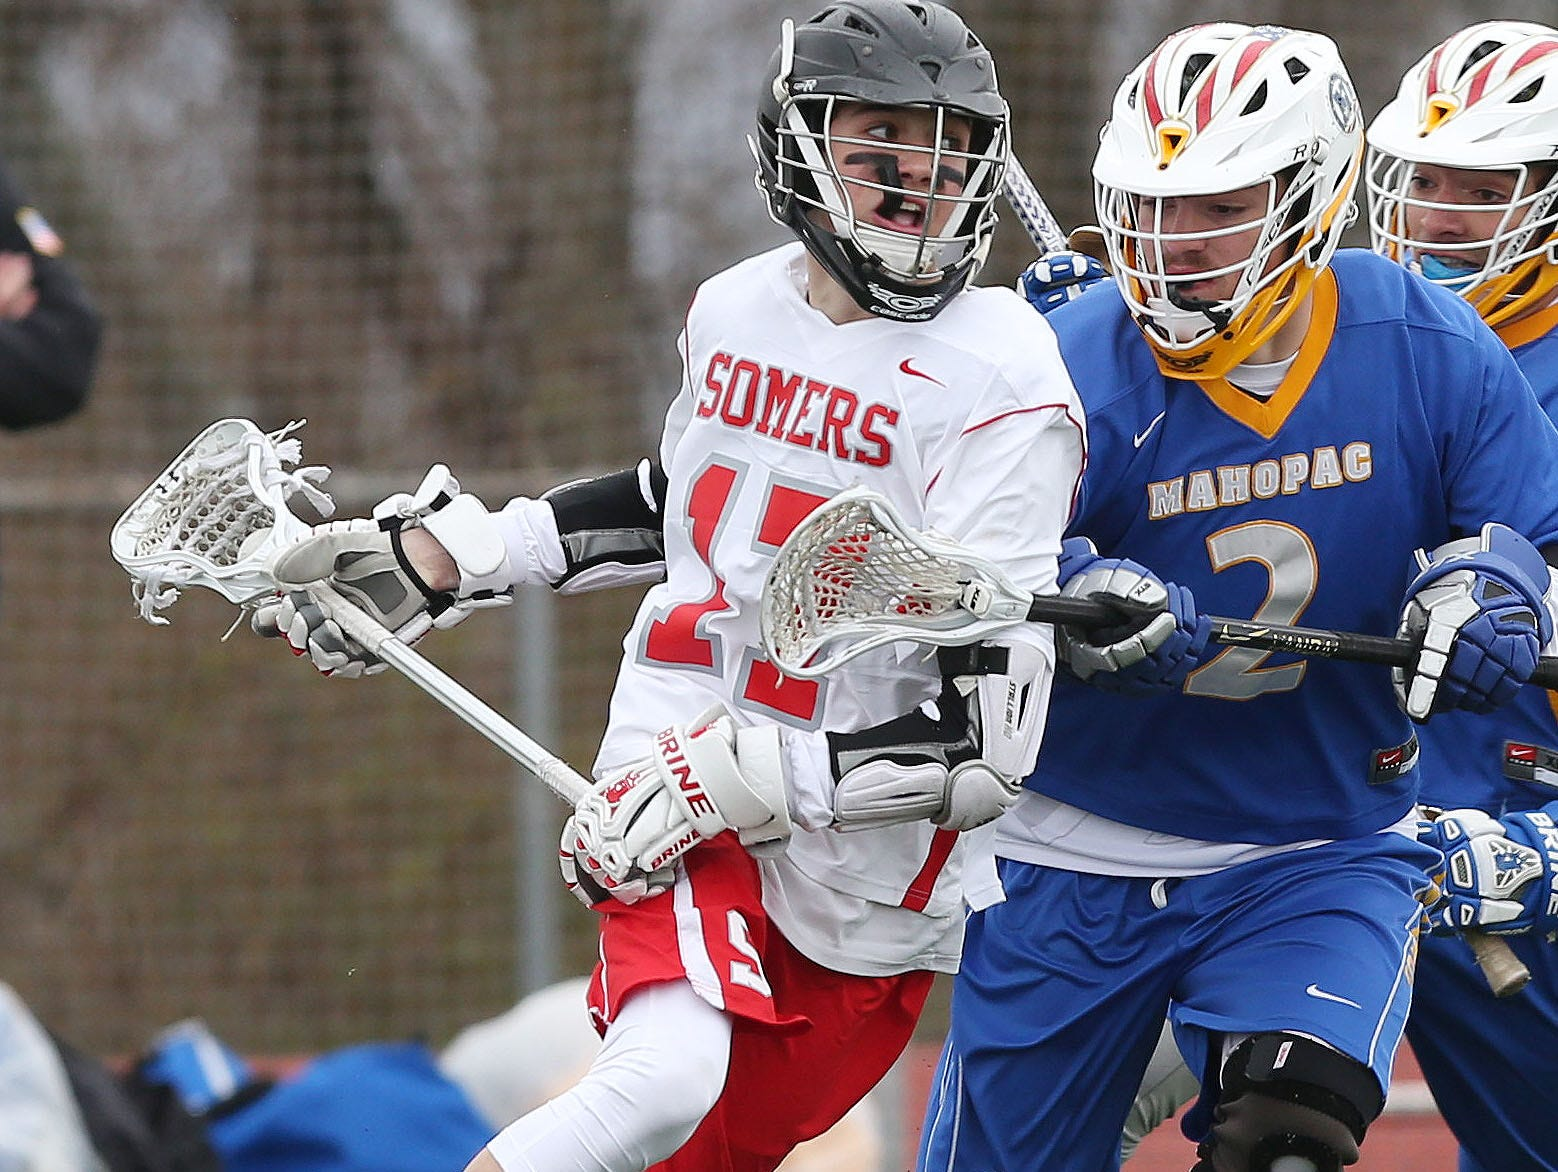 From left, Somers' Graham Roediger (17) works his way around Mahopac's Tom Wilson (2) as he drives to the goal during a boys lacrosse game at Somers High School April 9, 2016. Somers won the game 8-7.